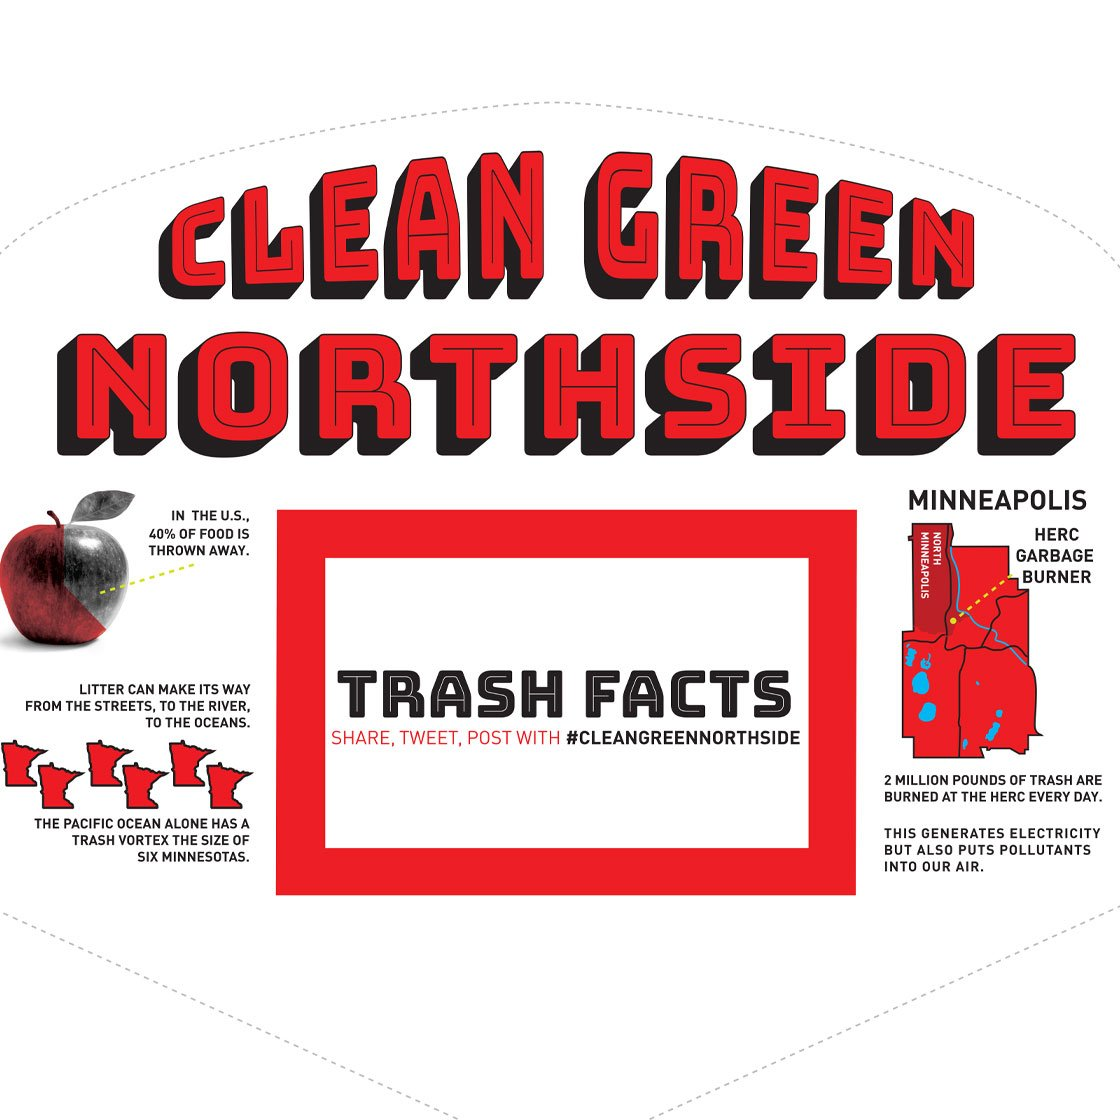 A mockup of the clean green northside trash can signs